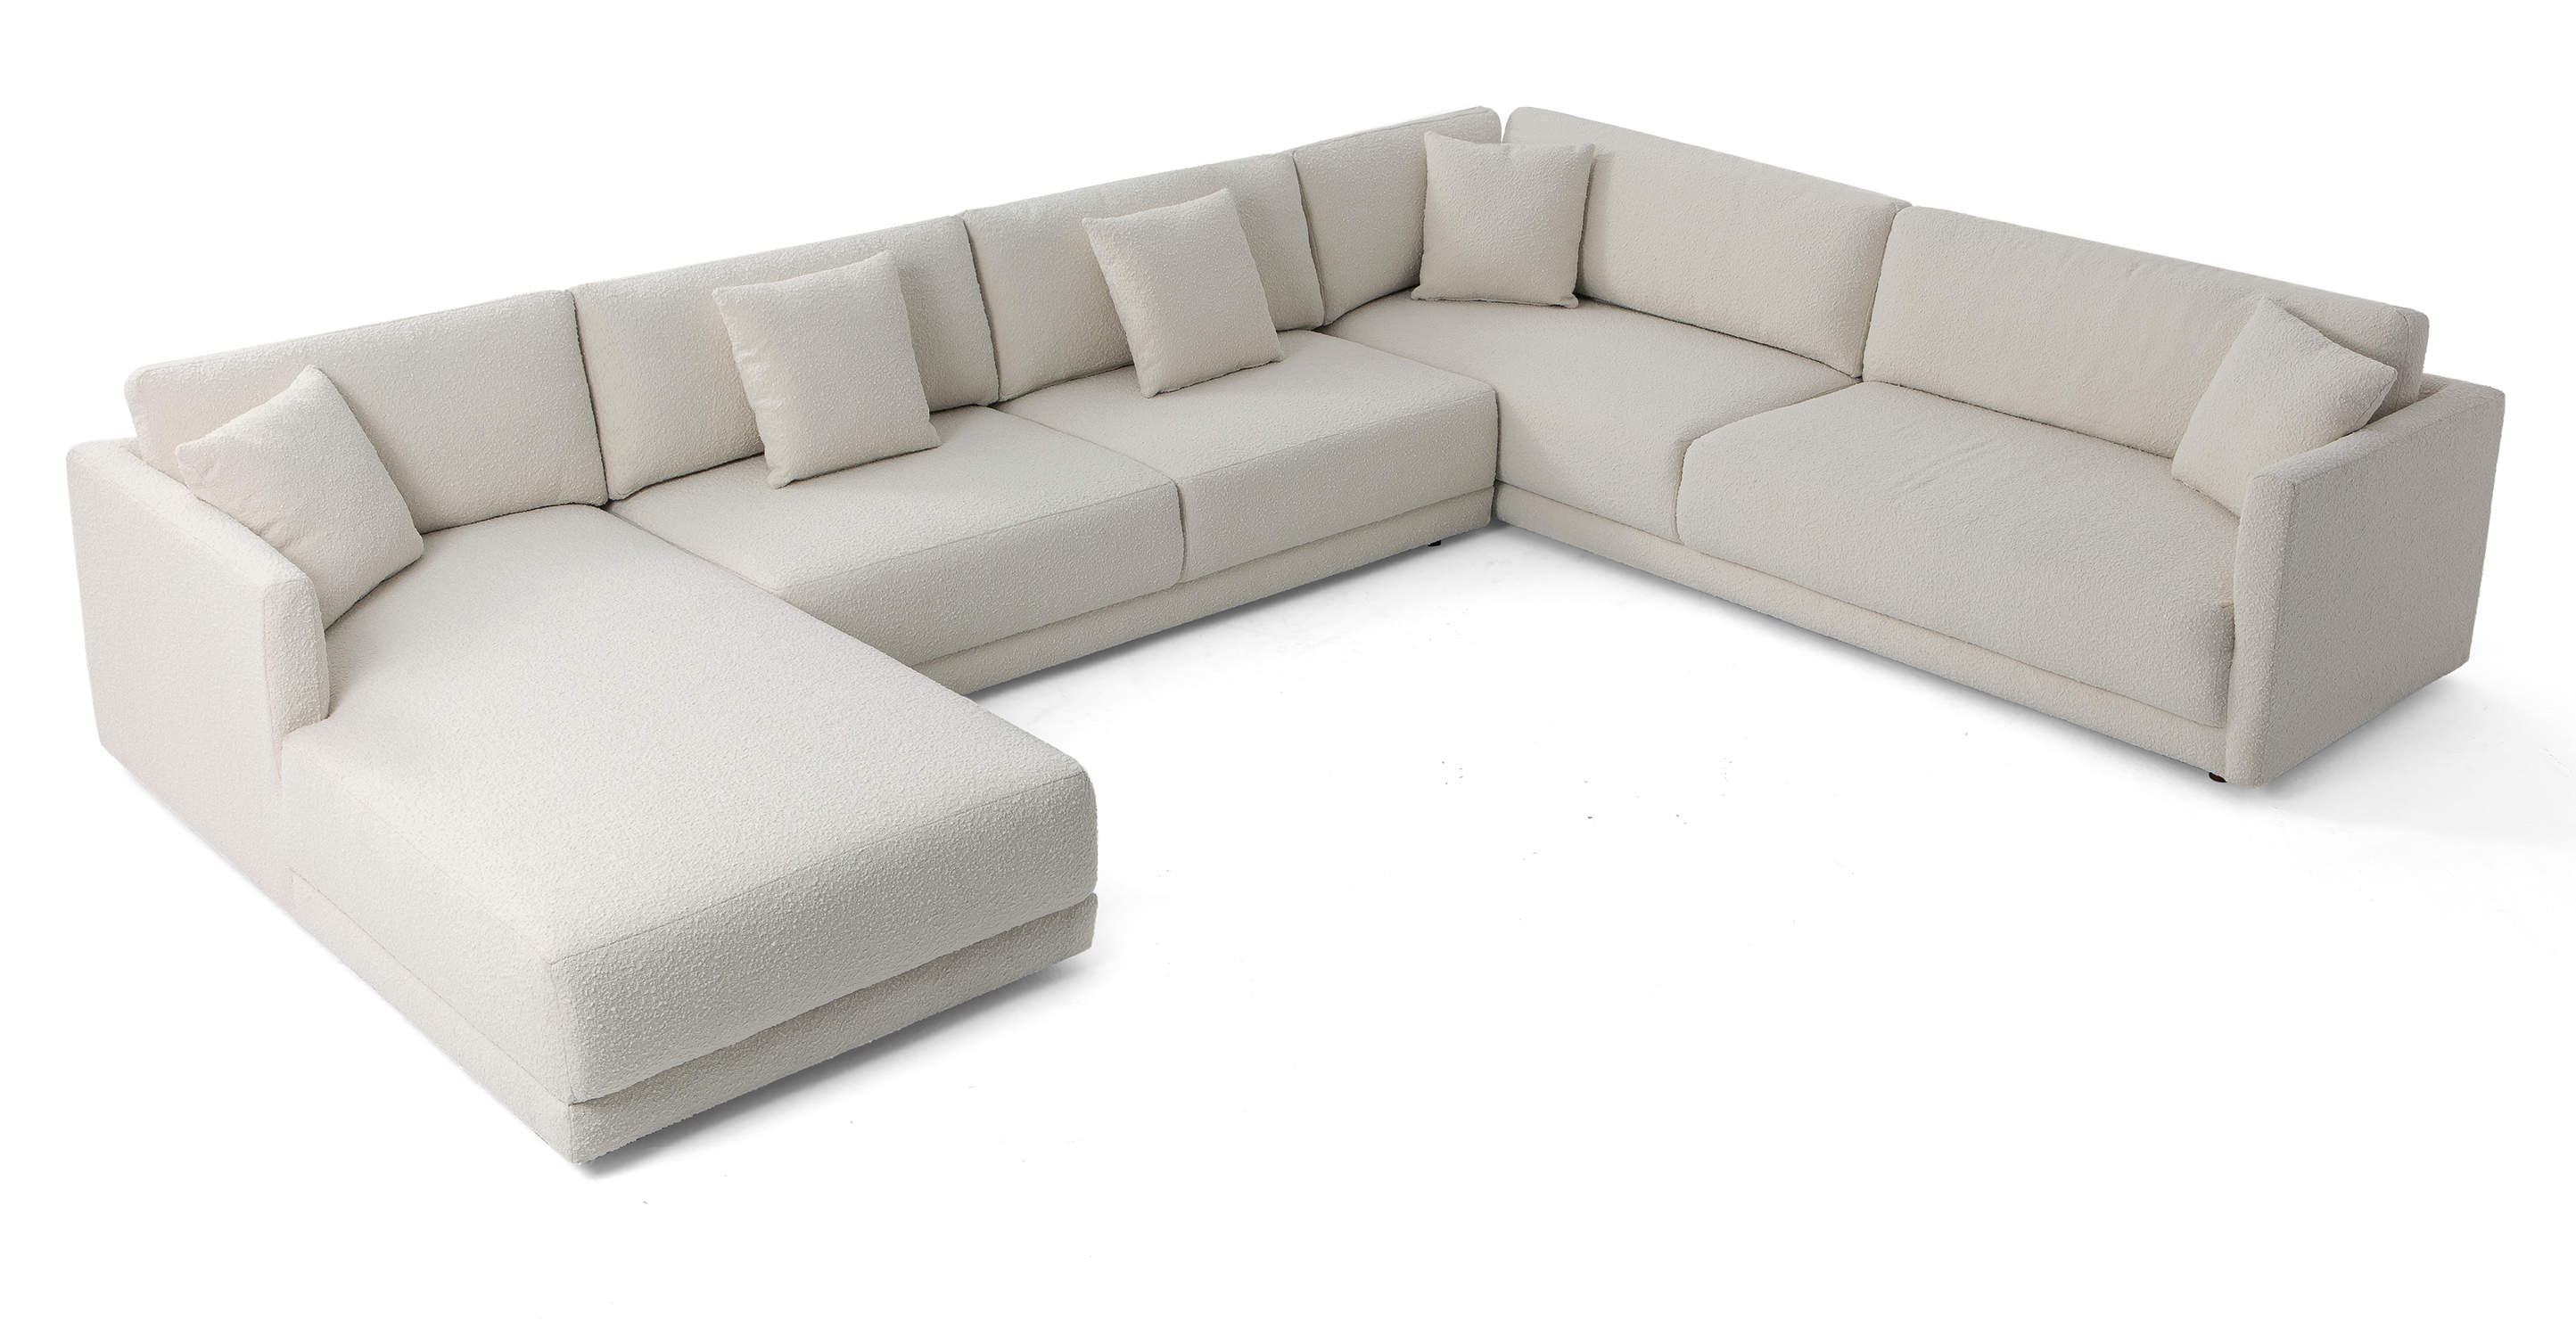 "Domus 155"" 3-pc 3-Sided Sofa Sectional Left, Blanc Boucle"